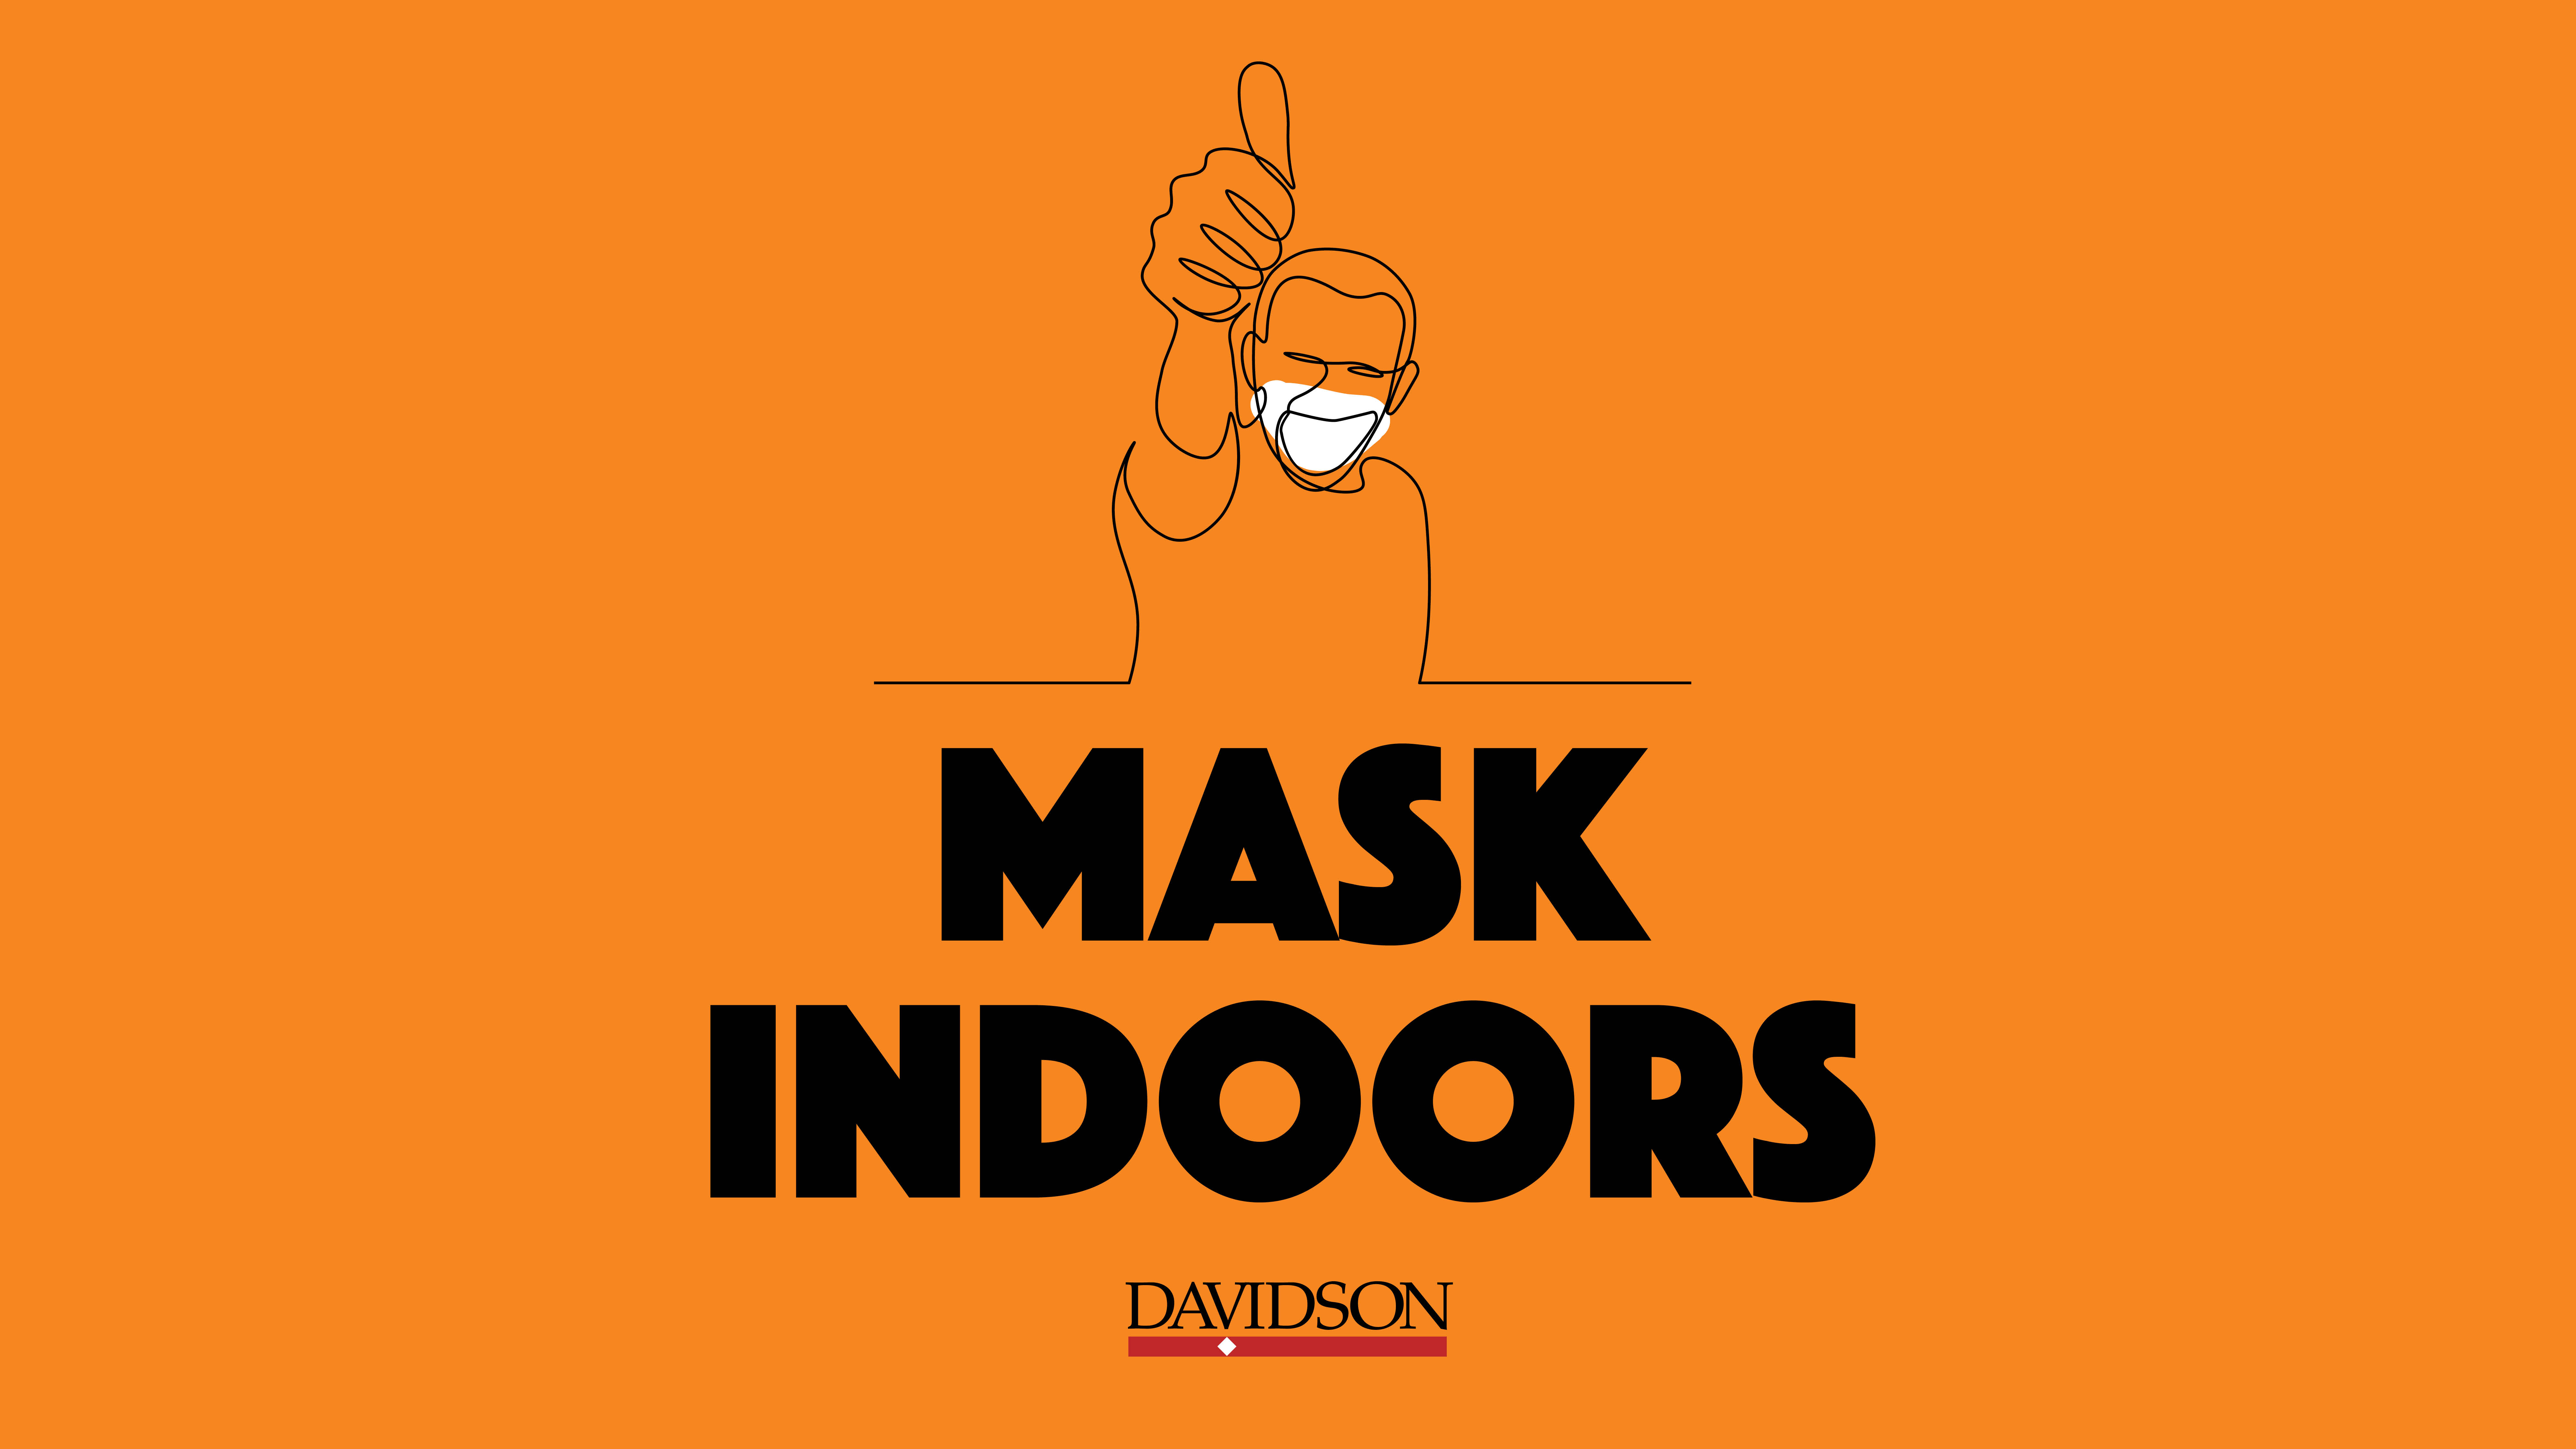 Guy outline with thumbs up and Mask Indoors text